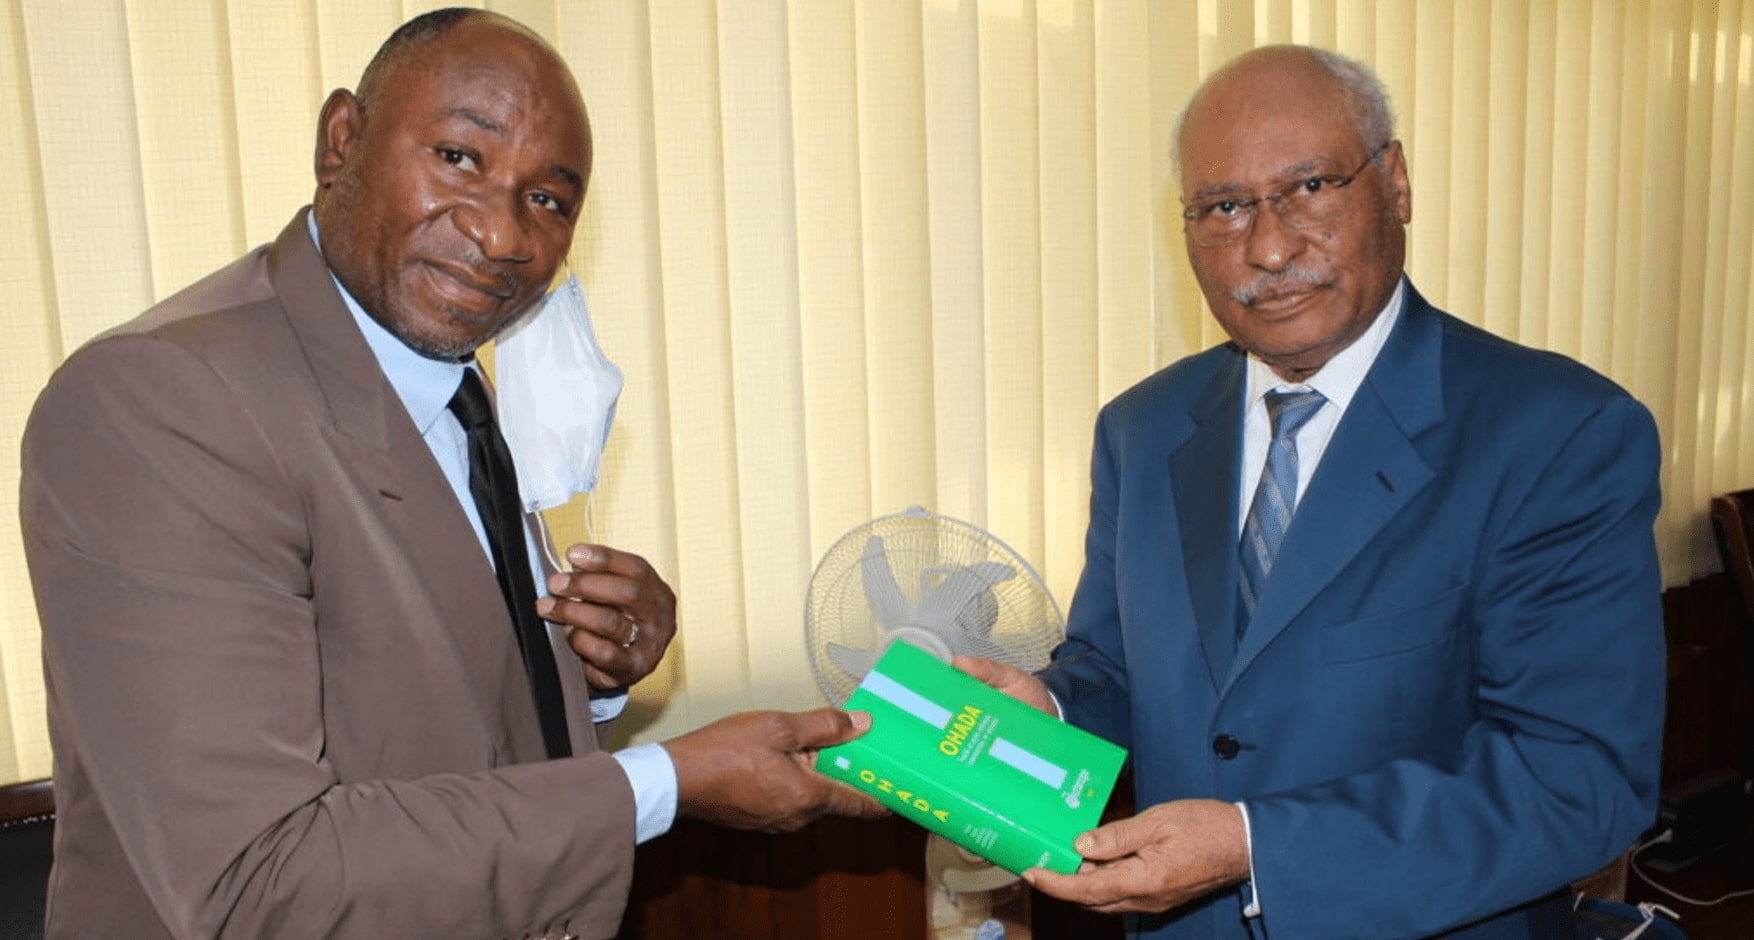 PRESENTATION OF OHADA GREEN CODES TO THE MINISTER OF JUSTICE  OF THE REPUBLIC OF CAMEROON